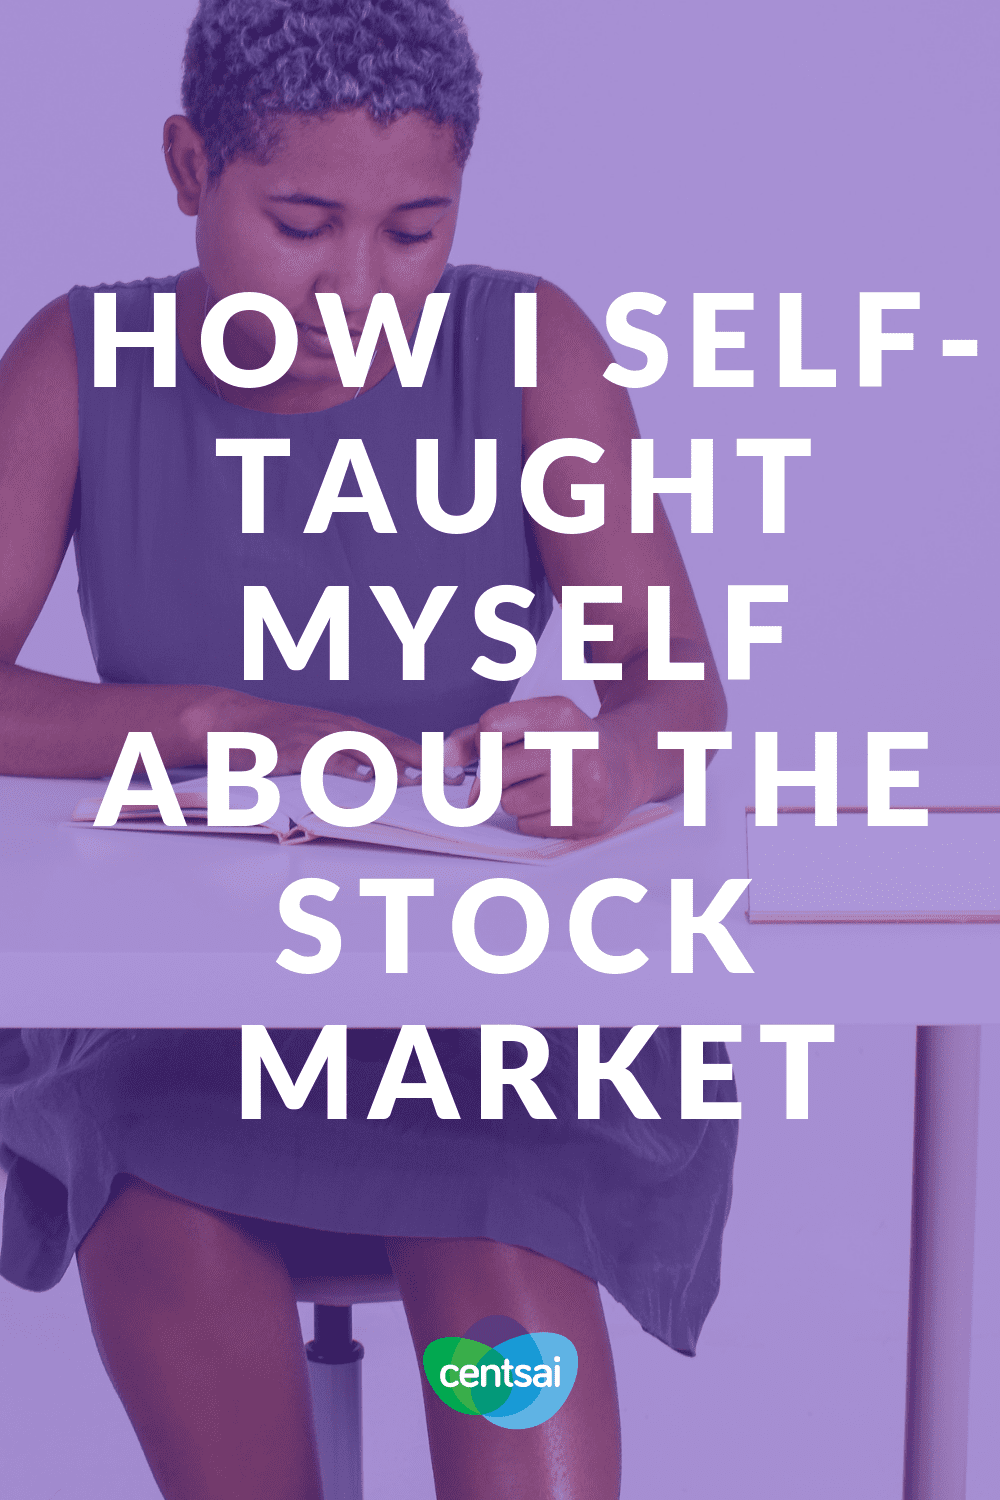 How I Self-Taught Myself About the Stock Market. Does trying to invest make your head hurt? Resources like the Motley Fool can help you with understanding the stock market. Learn how.#investment #stockmarket